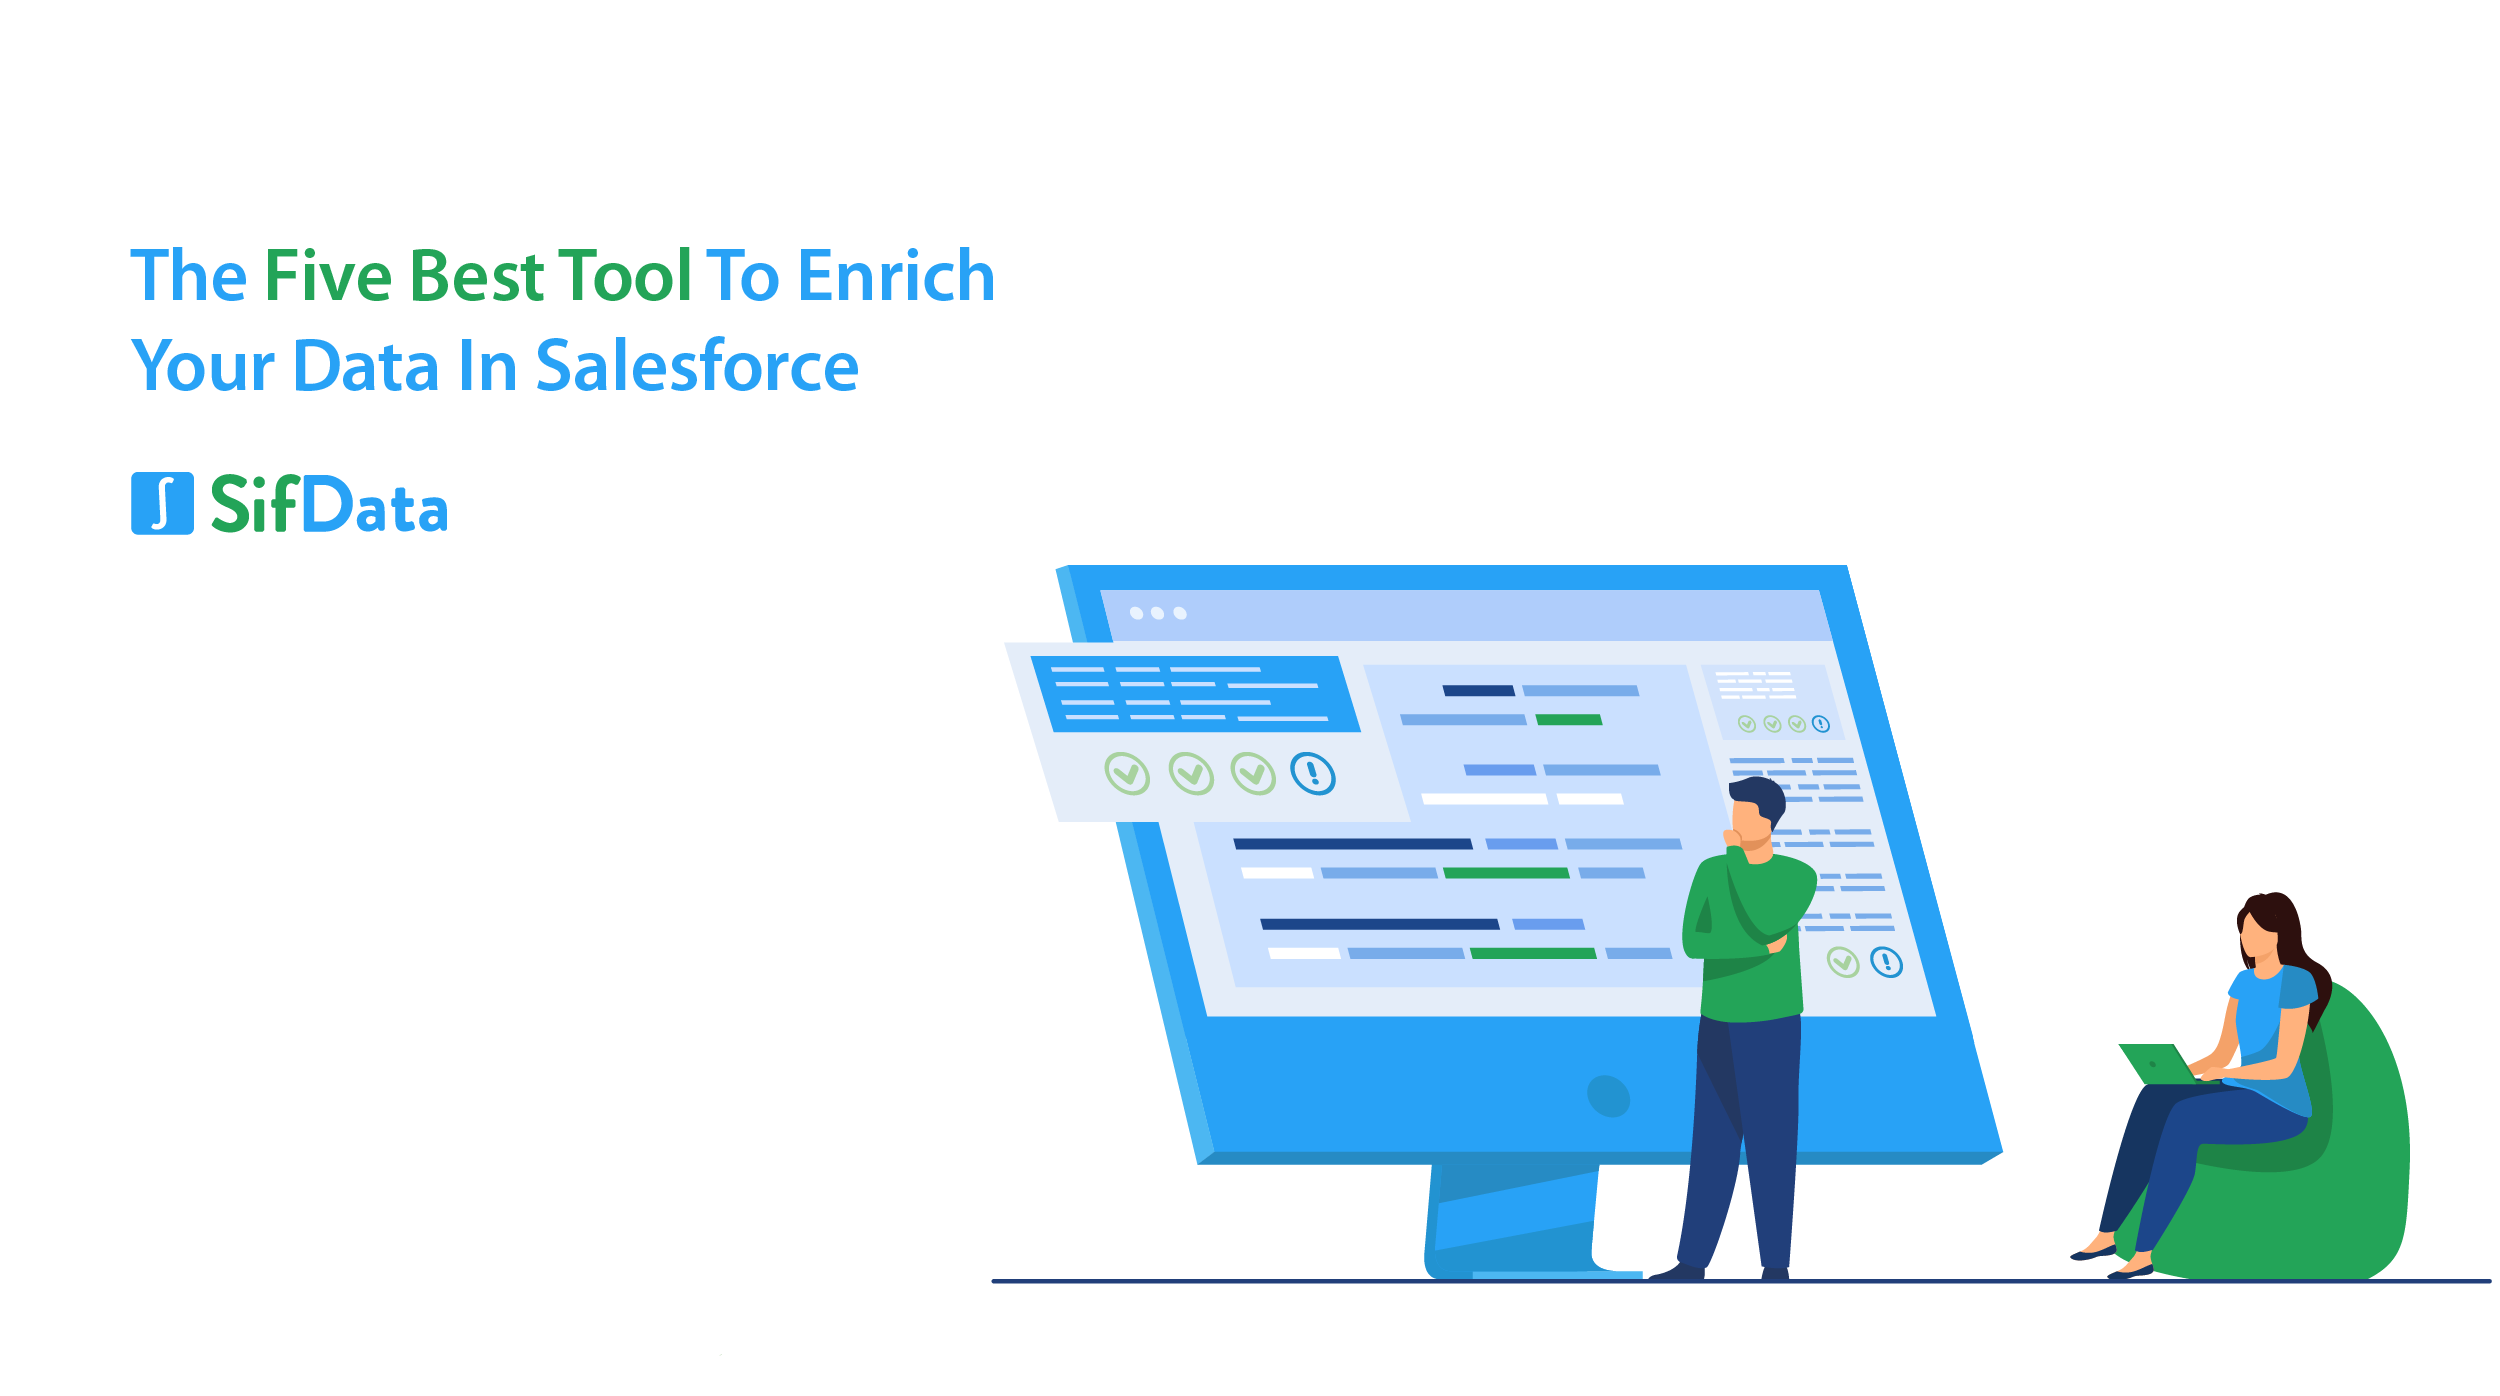 THE FIVE BEST TOOLS TO ENRICH YOUR DATA IN SALESFORCE